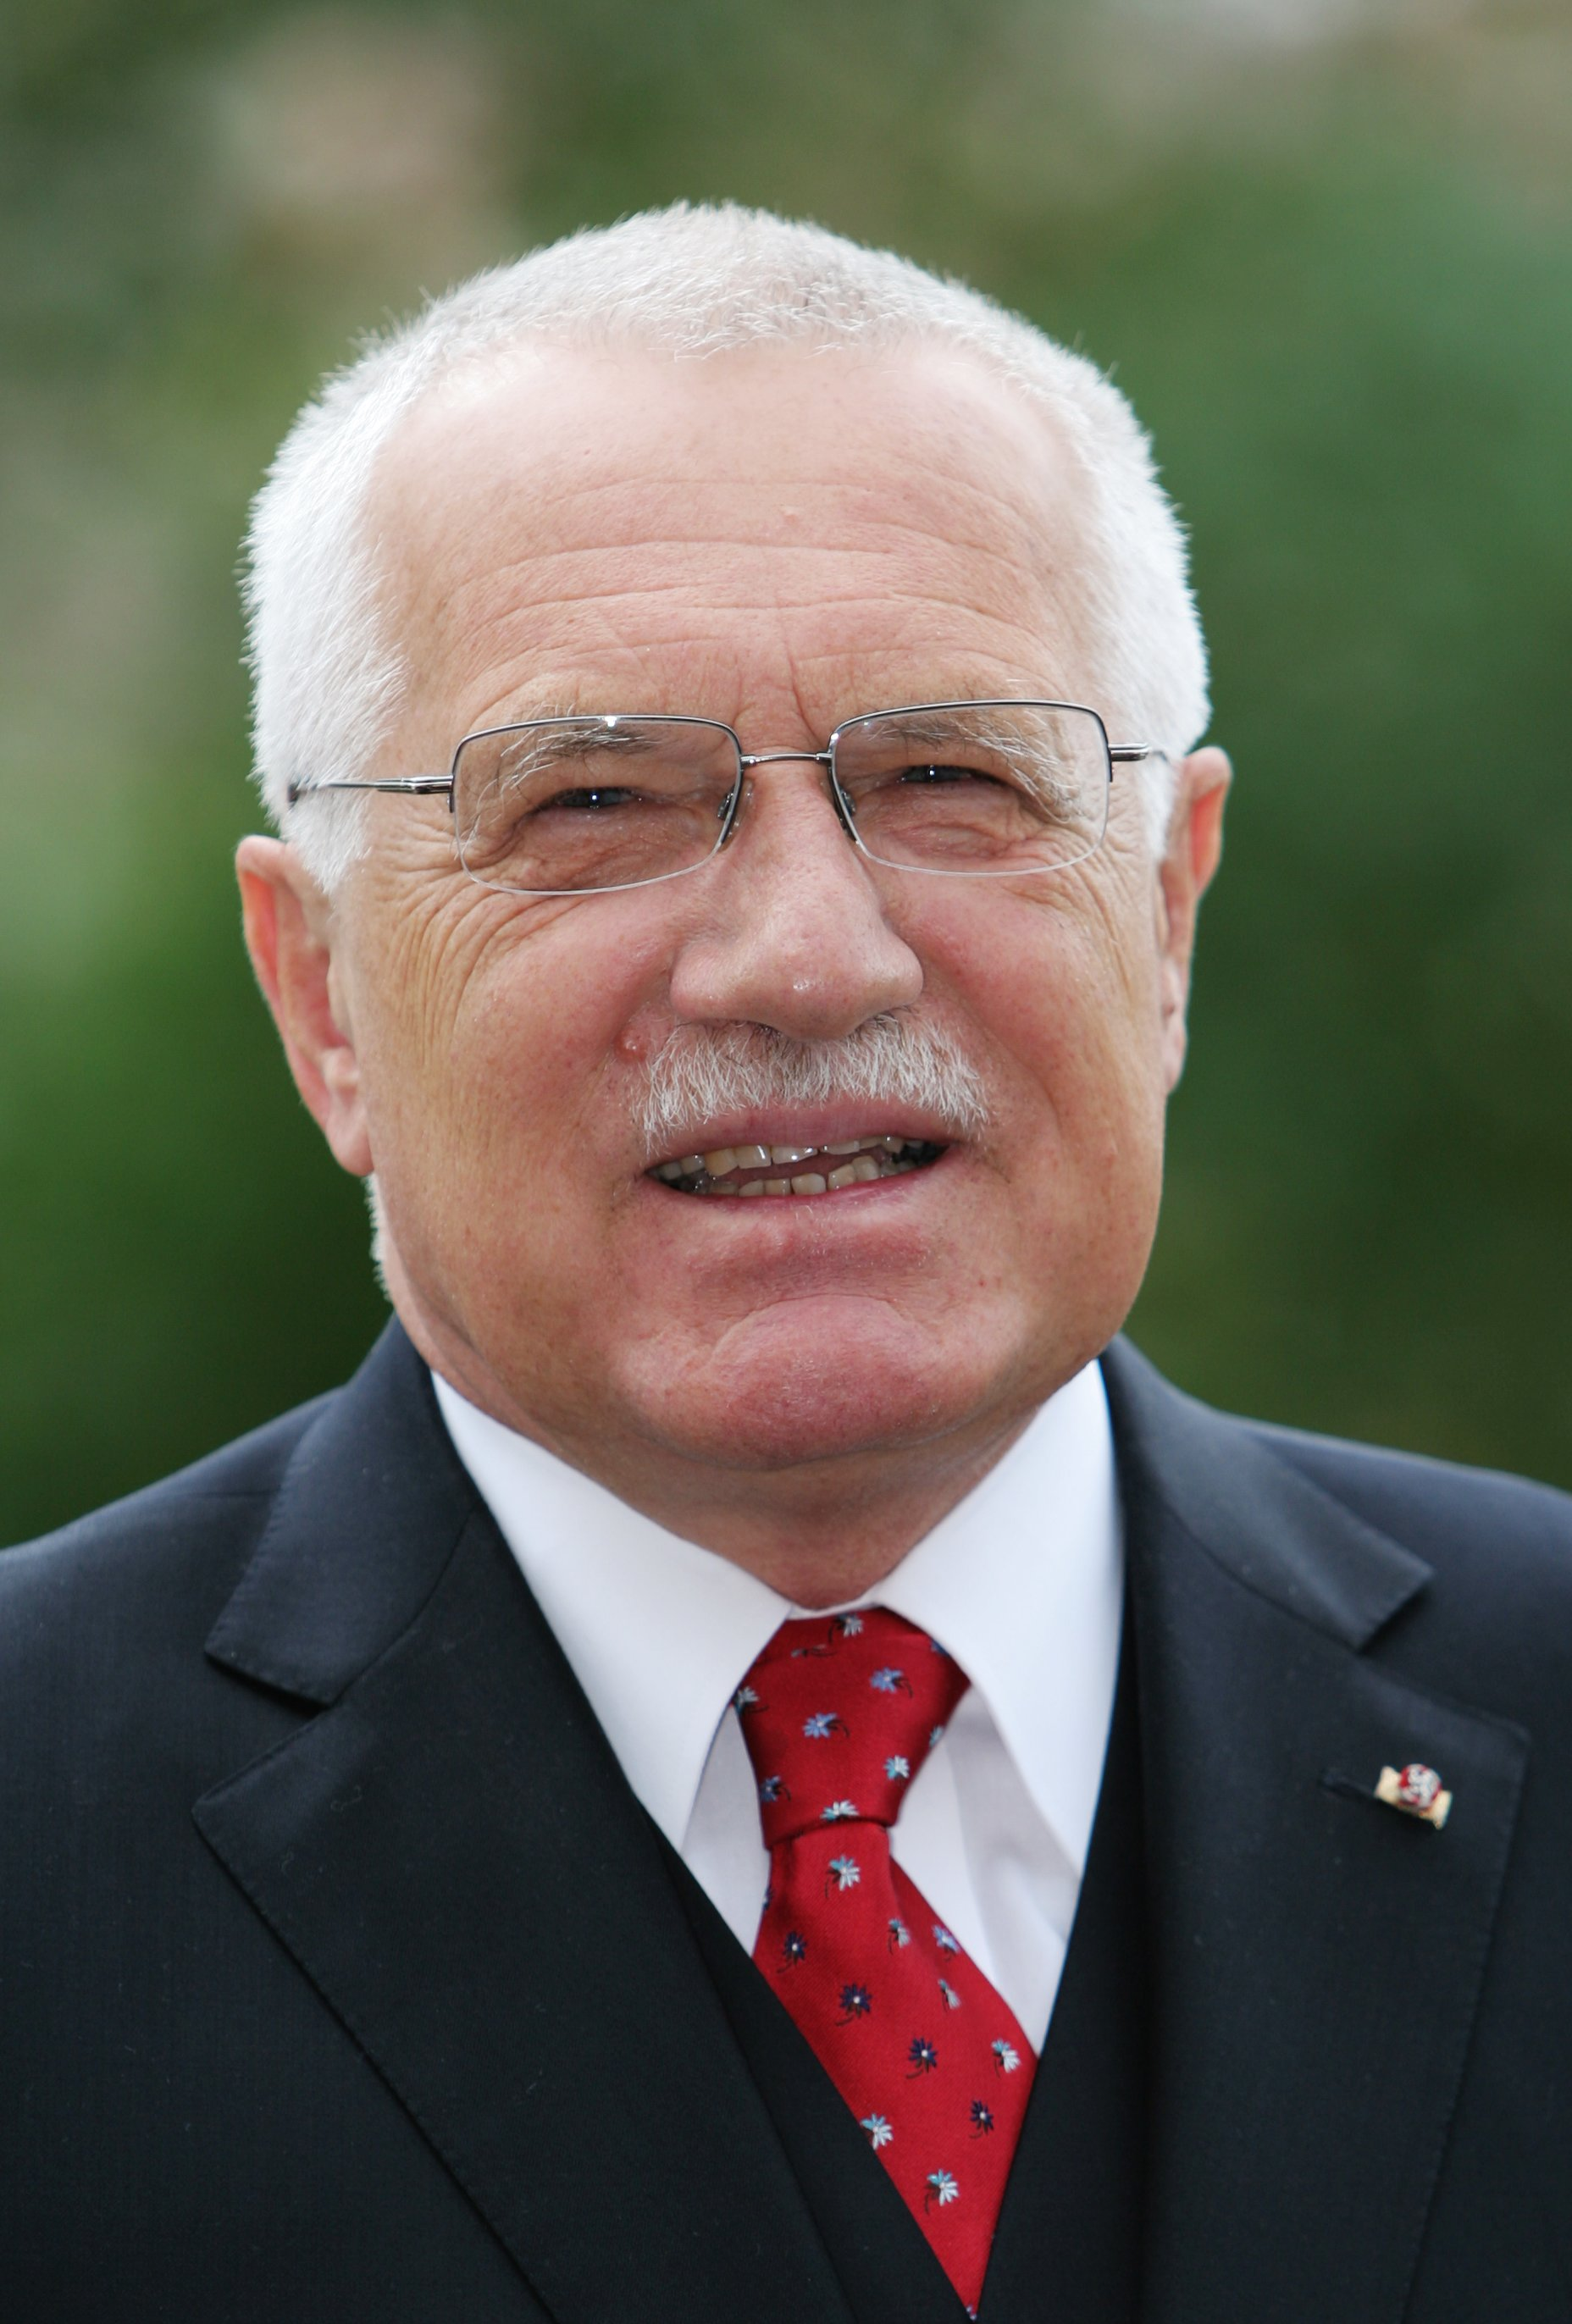 A conversation with former Czech President Václav Klaus, for John Bolton's Gatestone Institute